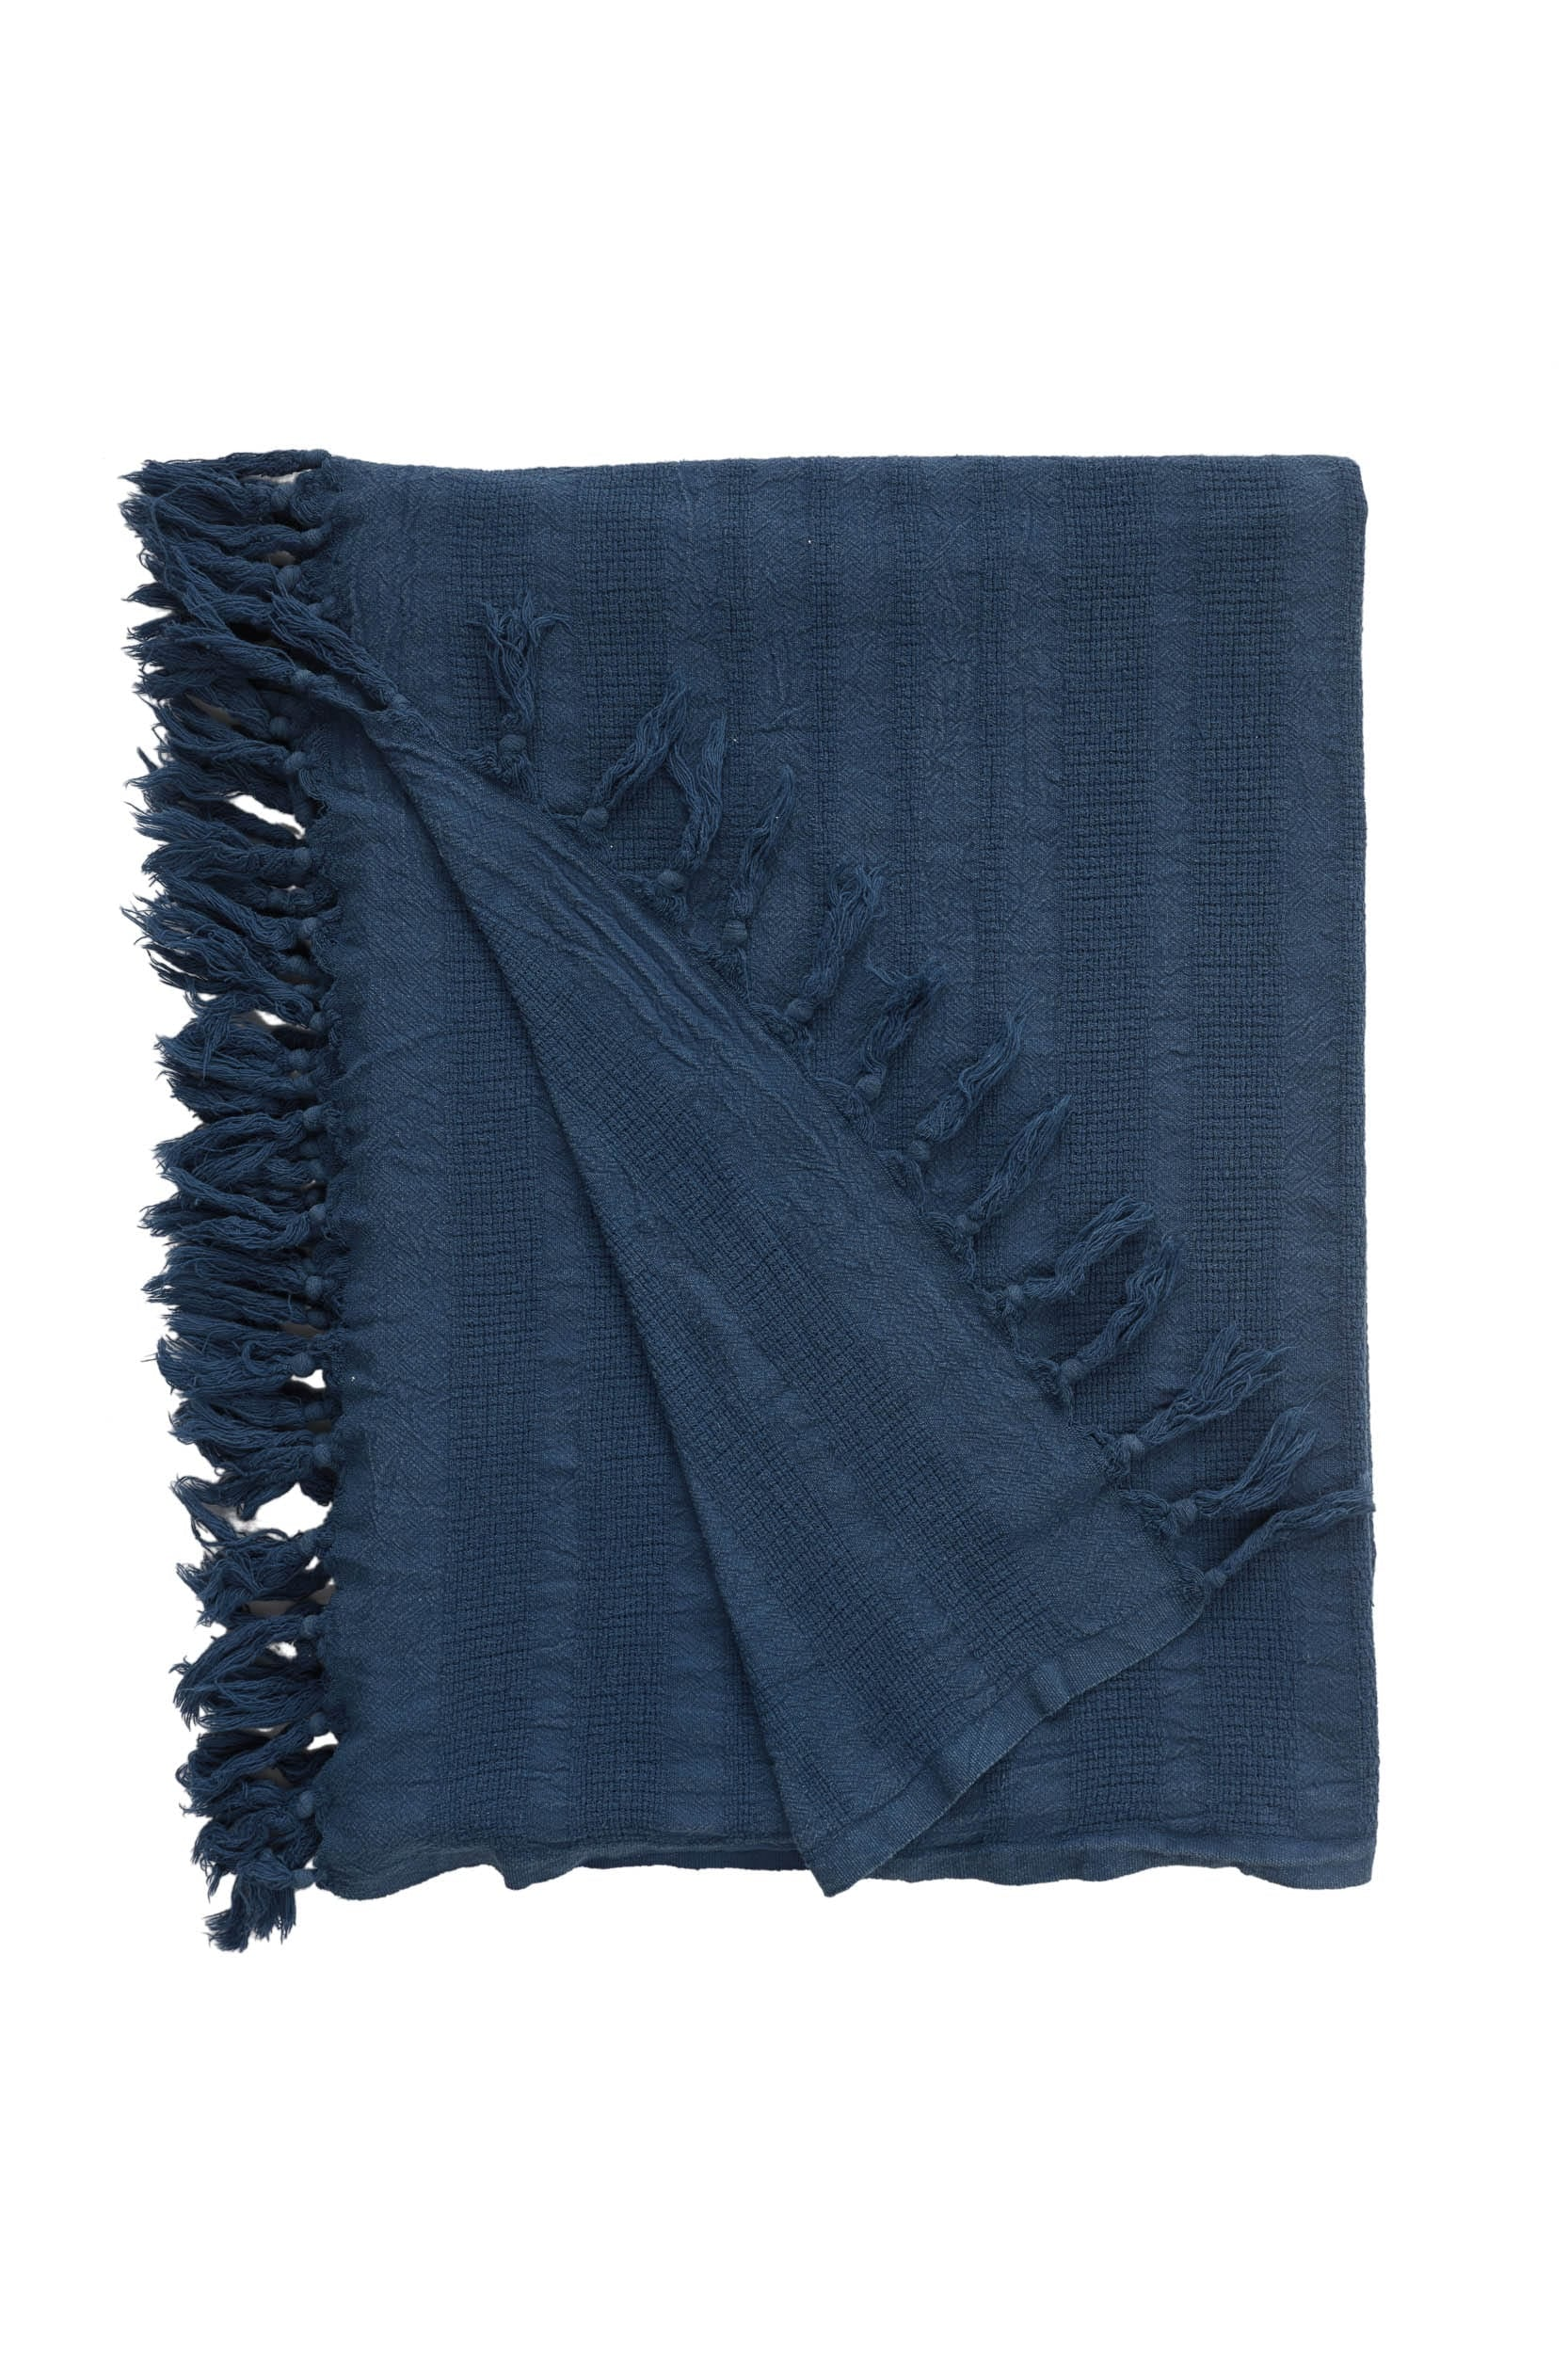 Rhye Dyed Cotton Blanket